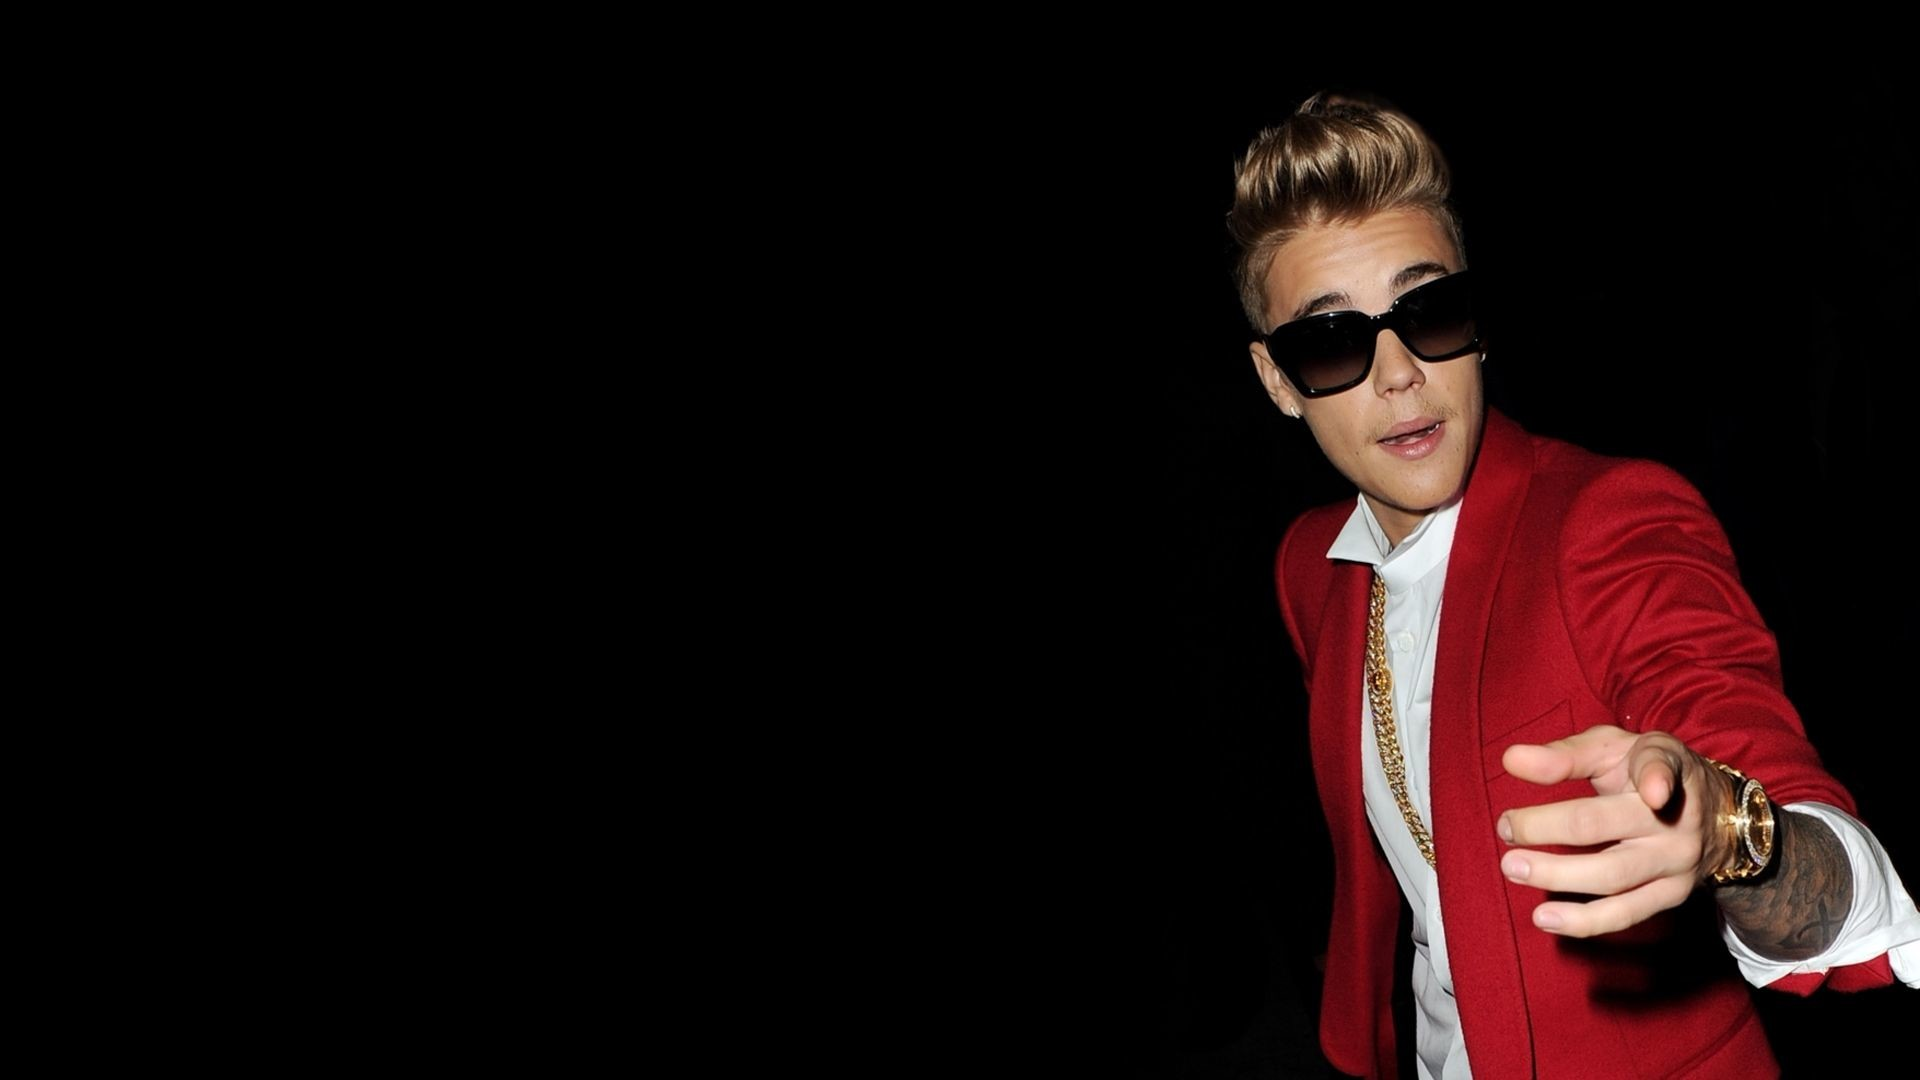 Justin Bieber New Wallpapers 2018 66 Pictures